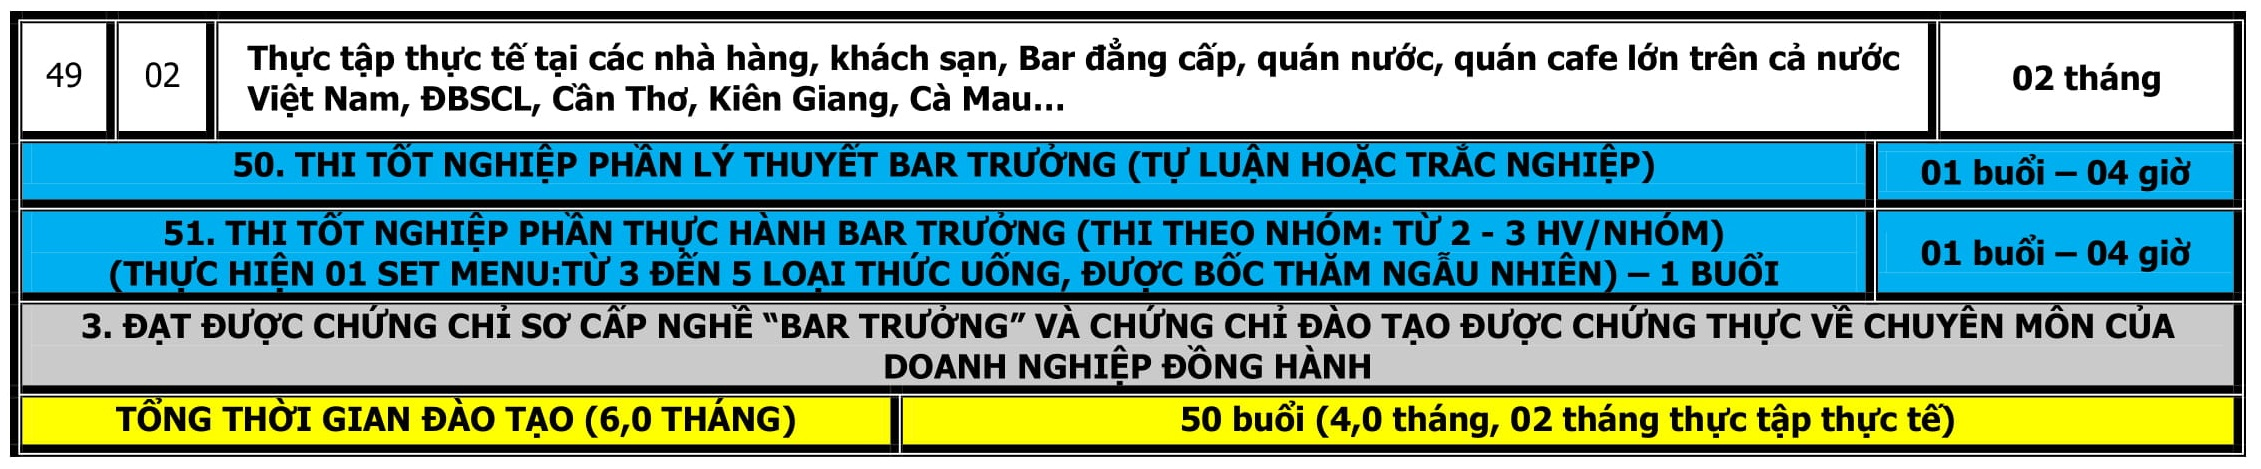 CT DAO TAO BAR TRUONG-11